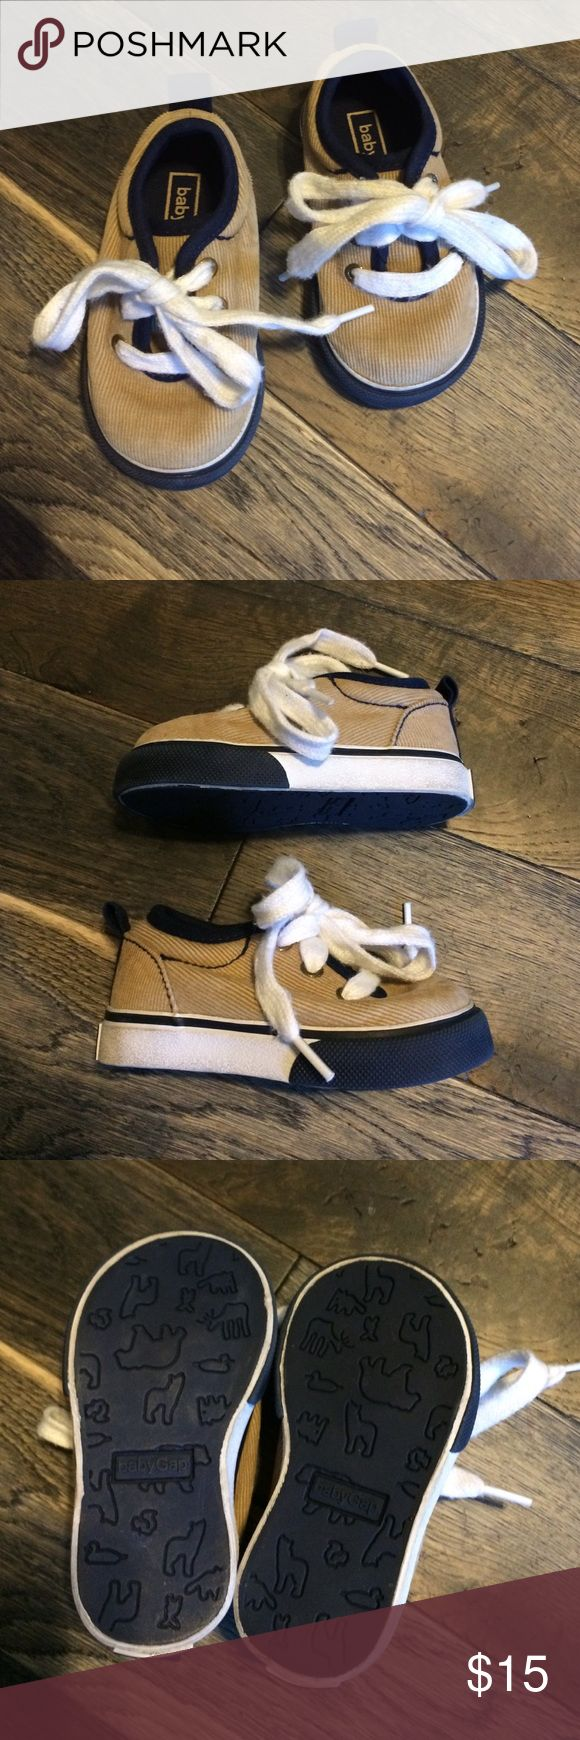 Baby GAP Corduroy Kicks Excellent condition--almost new--baby GAP tan Corduroy with Navy blue accent low-top lace up oxford sneakers. The style is sharp enough looking that they can be worn with casual & even more formal so your little guy's feet are comfortable for romping about. GAP Shoes